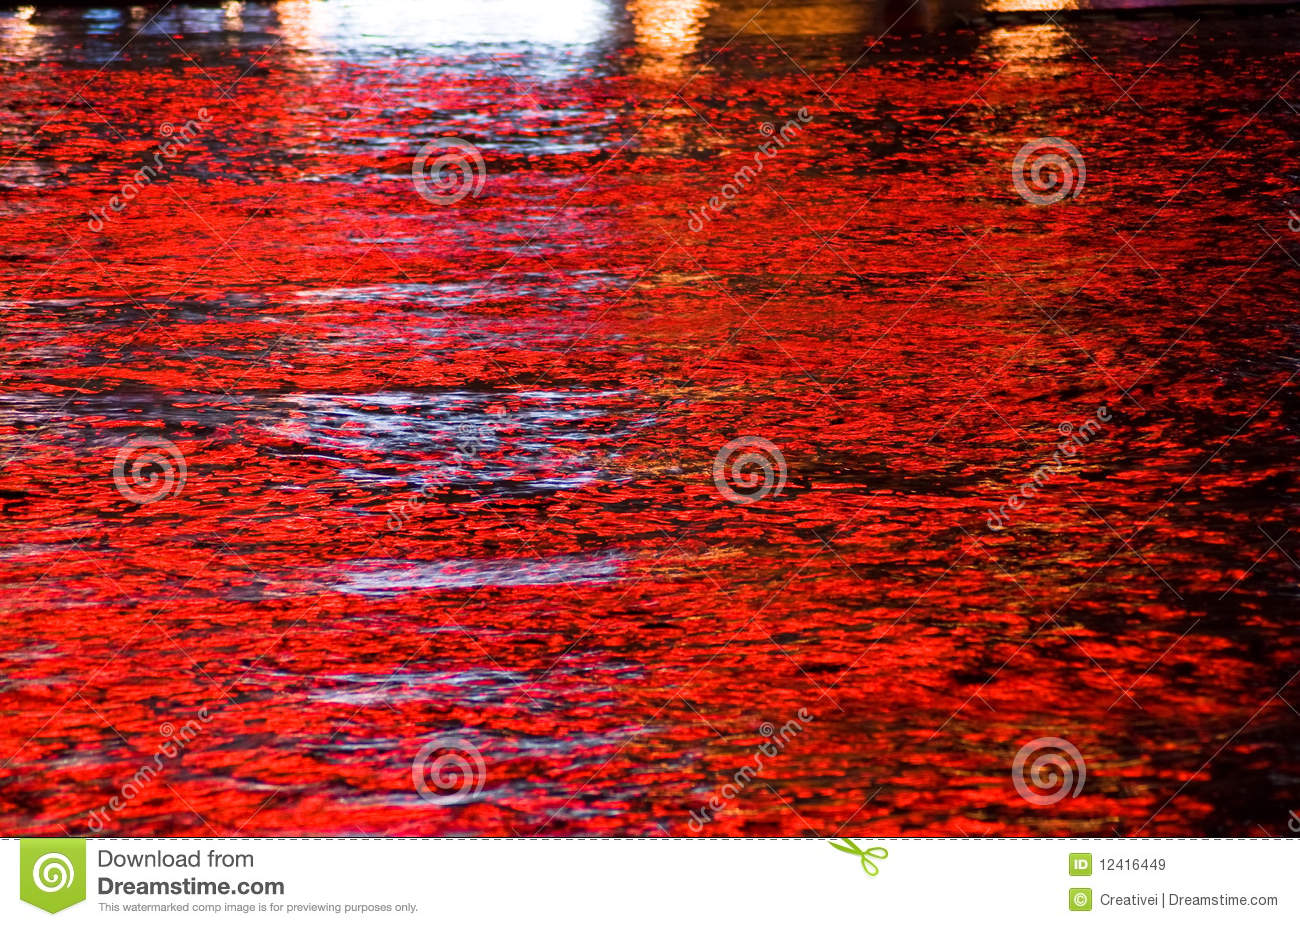 Red lights reflected in water